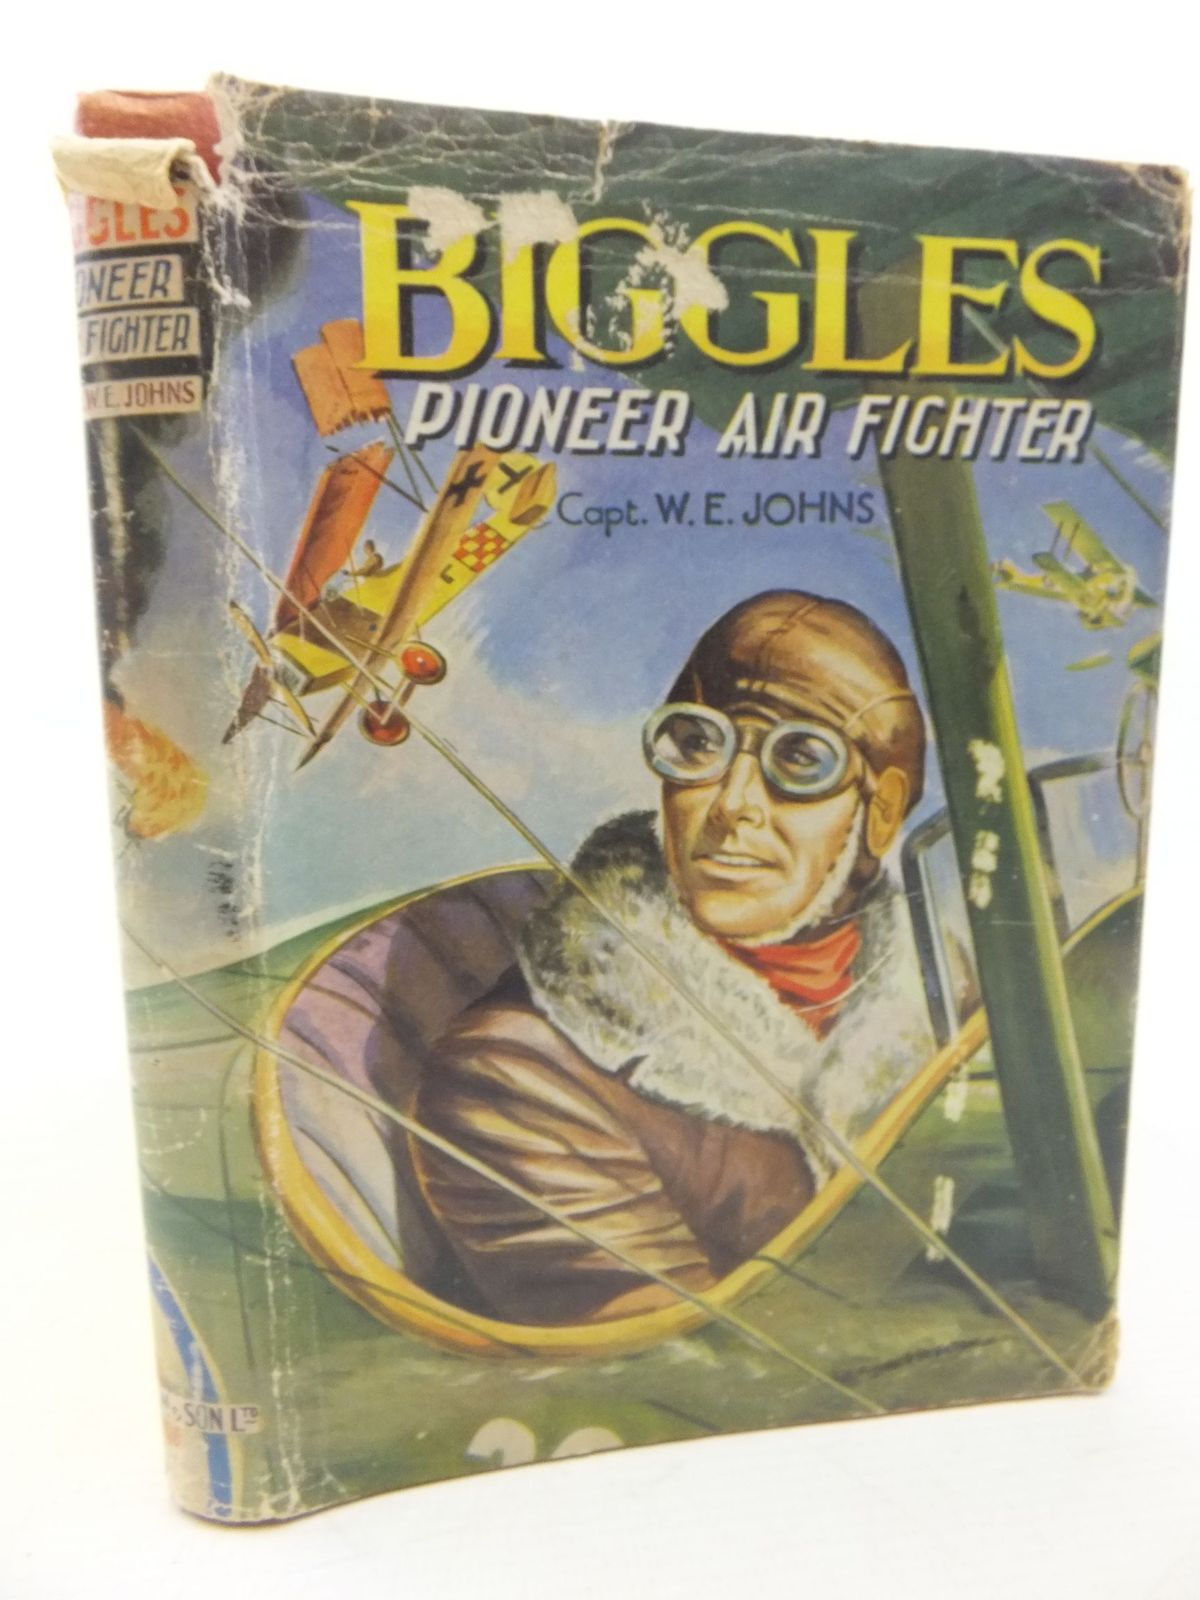 Photo of BIGGLES PIONEER AIR FIGHTER written by Johns, W.E. published by Dean & Son Ltd. (STOCK CODE: 2117862)  for sale by Stella & Rose's Books